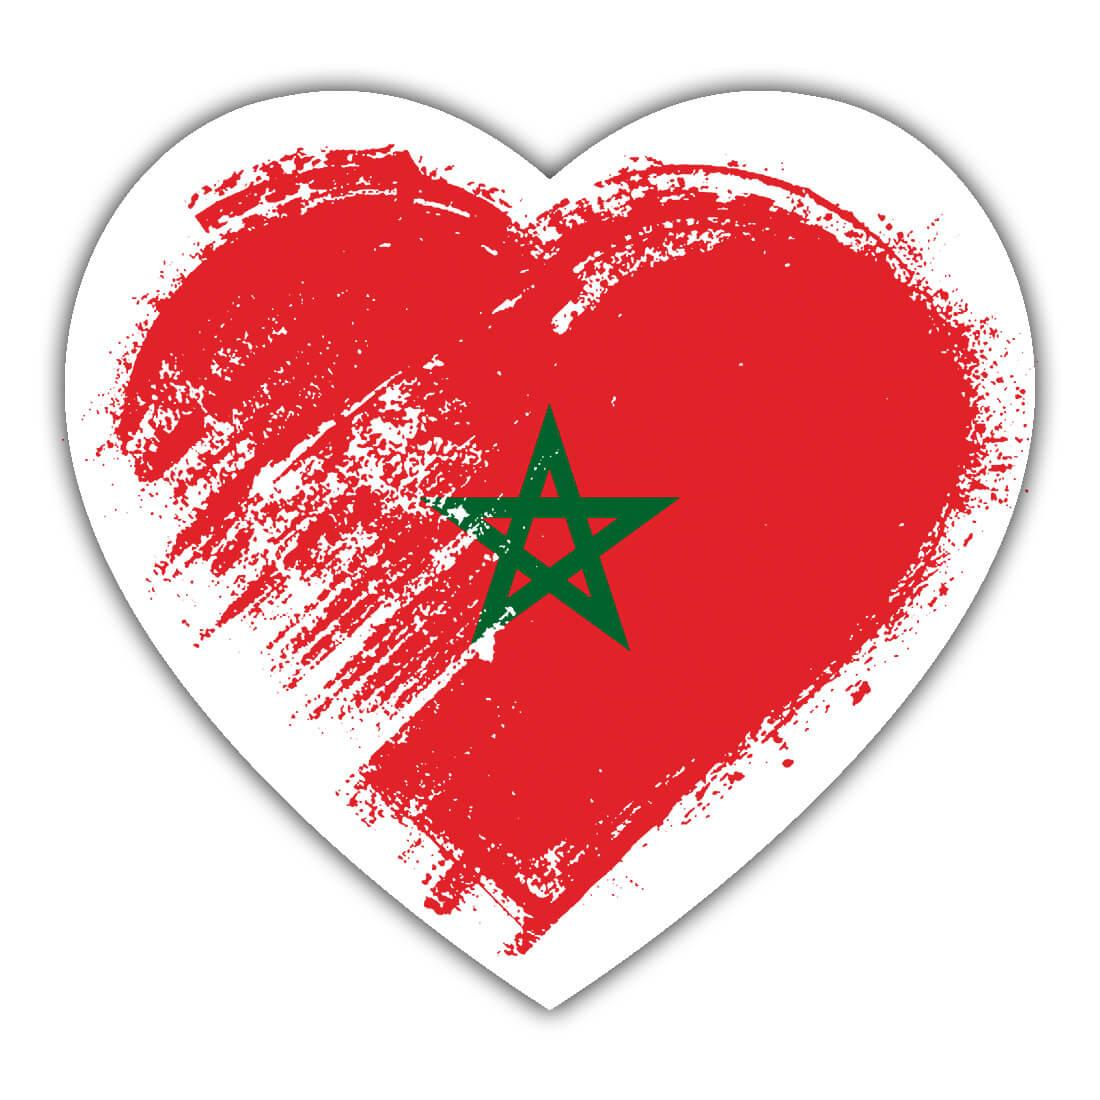 Moroccan Heart : Gift Sticker Morocco Country Expat Flag Patriotic Flags National